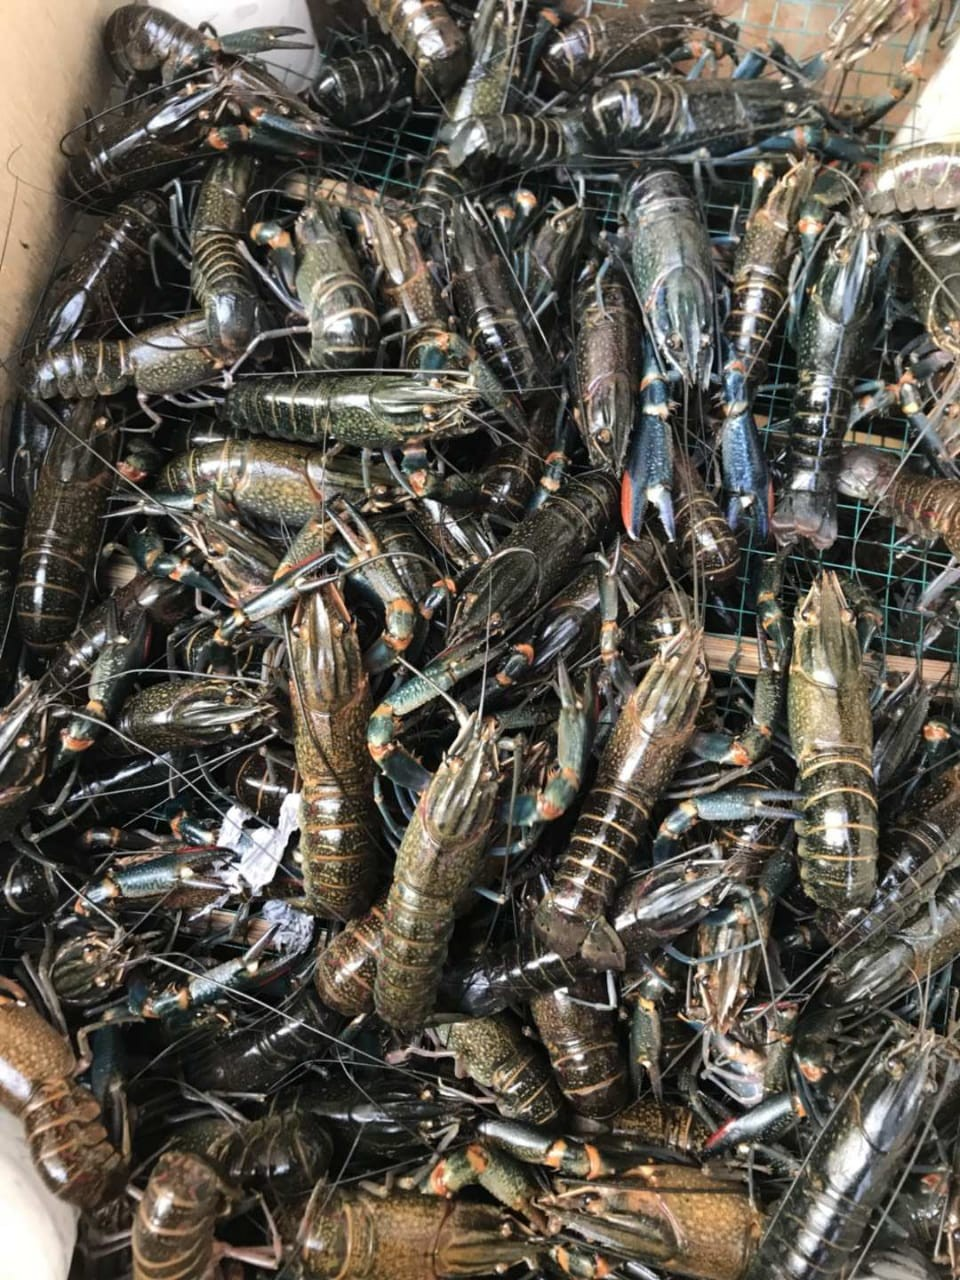 jualJual Bibit Lobster Air Tawar